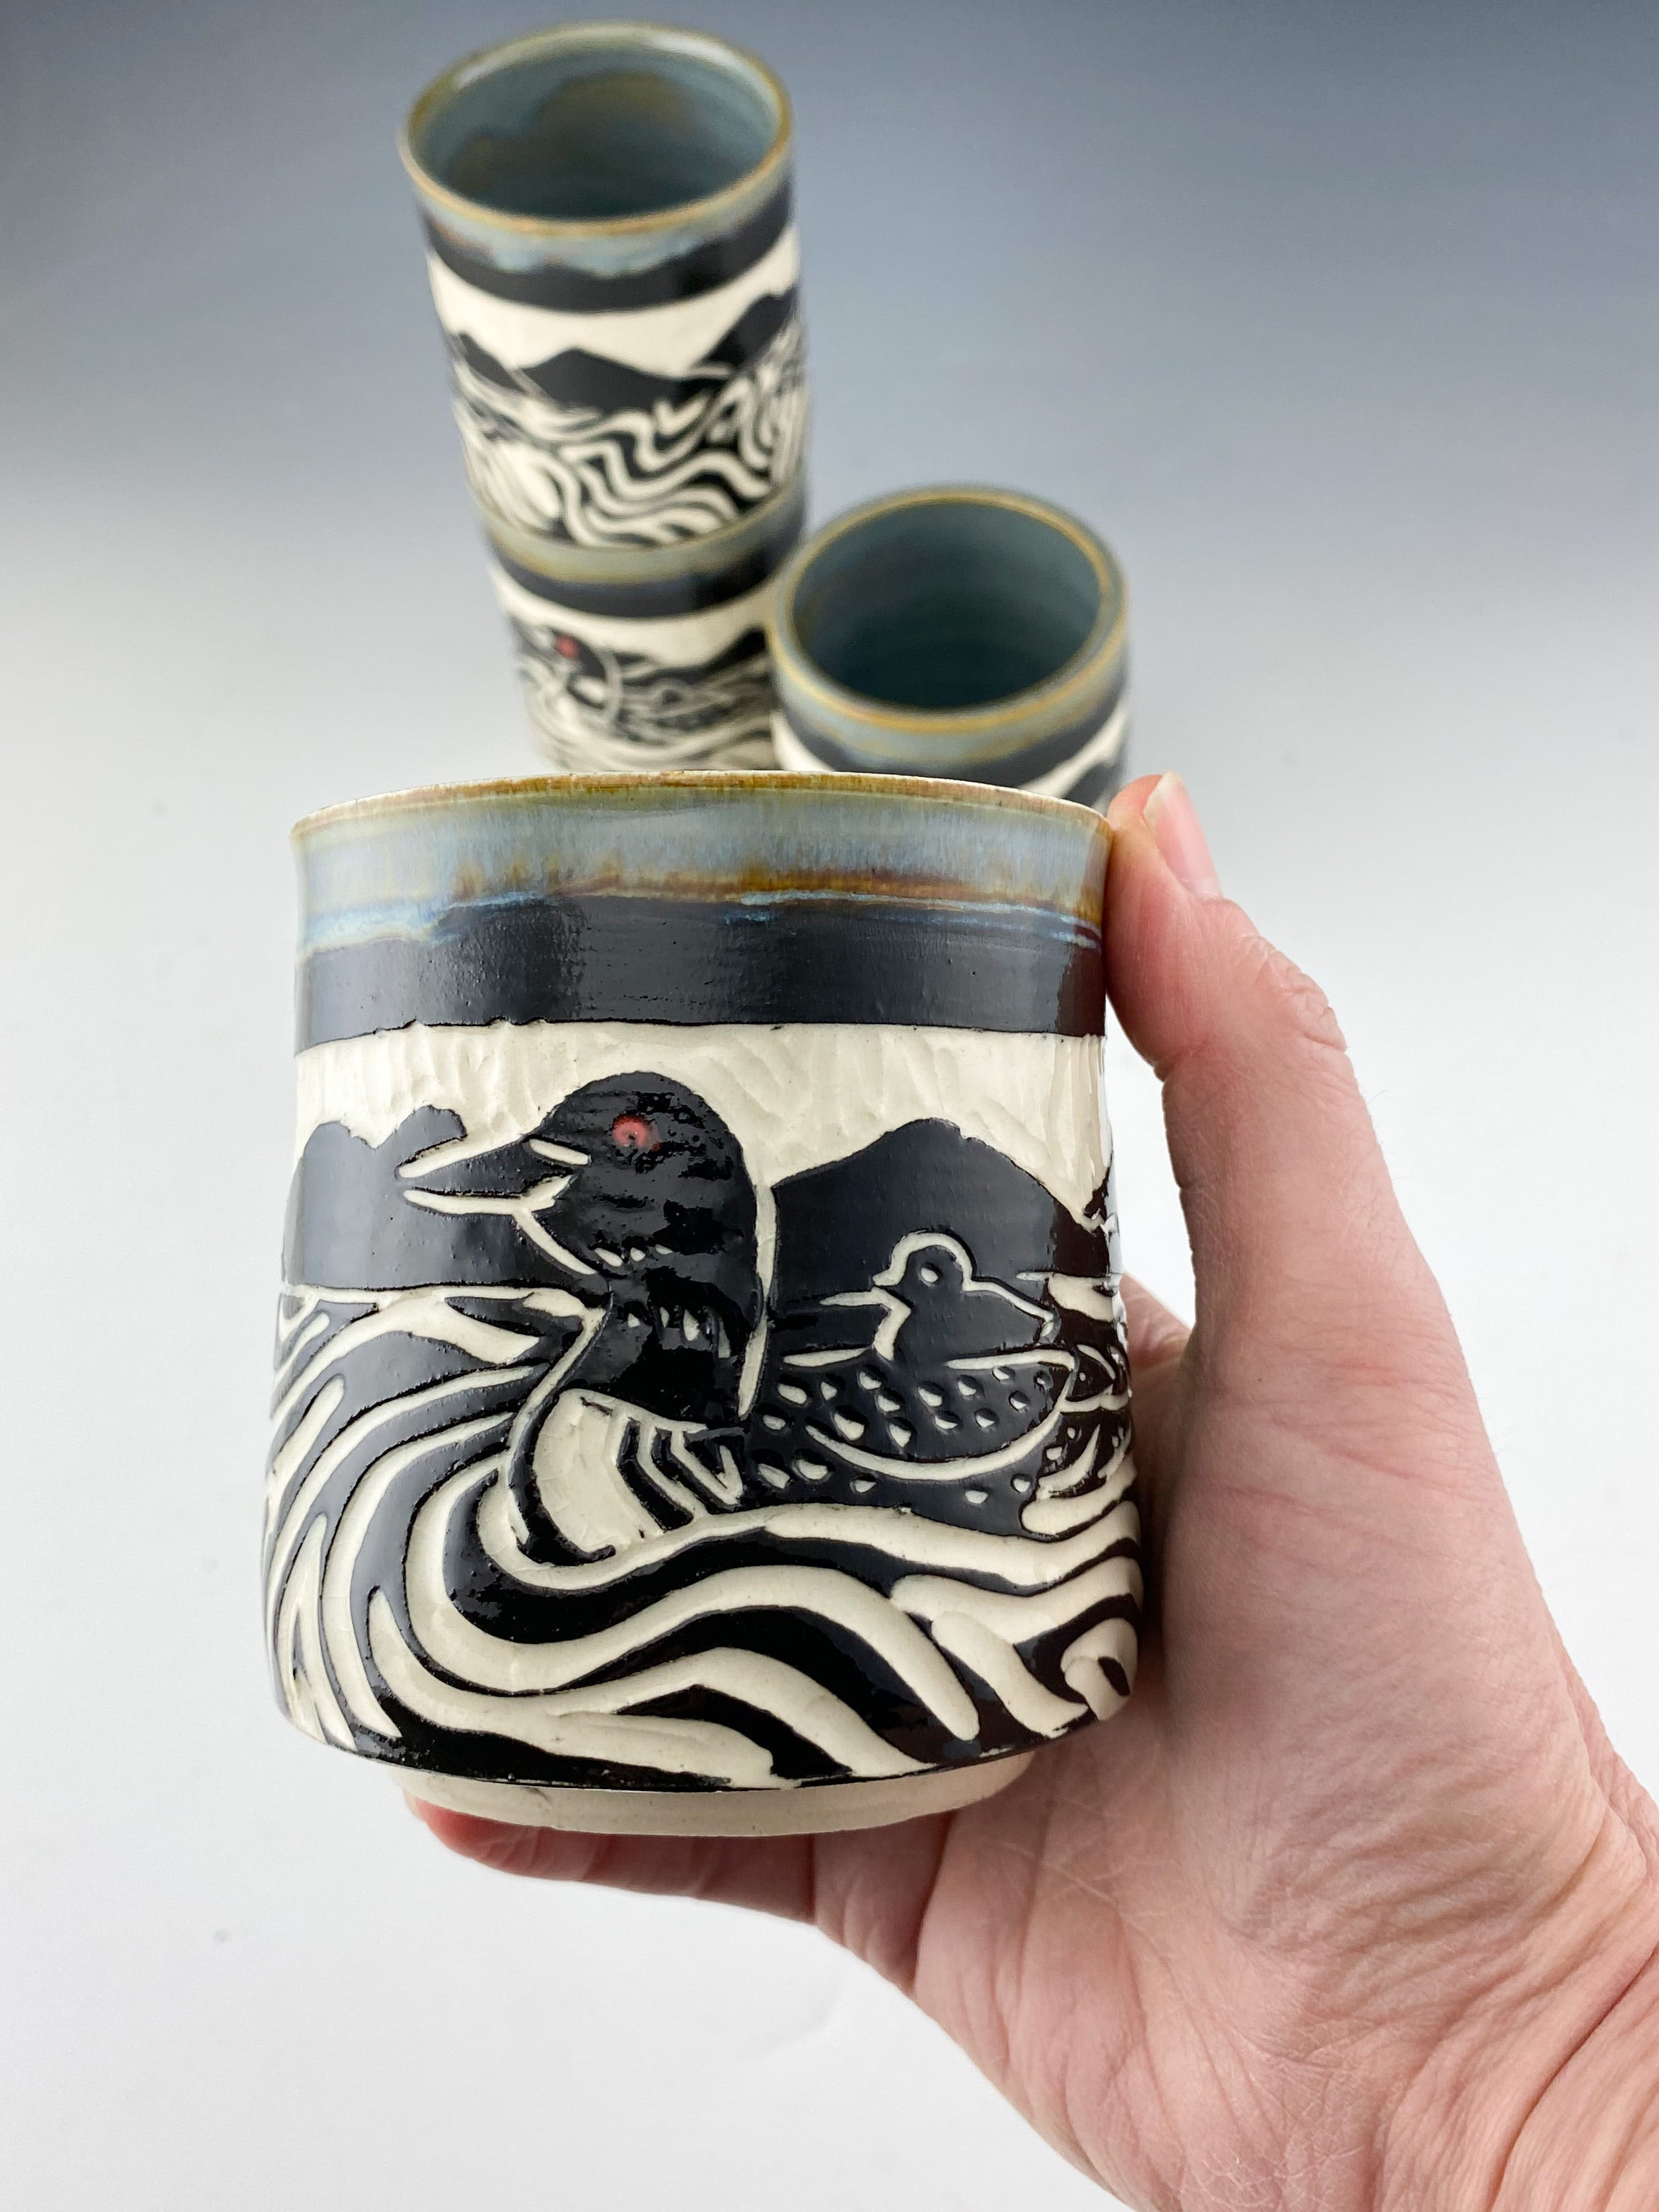 Handmade ceramic loon stacking tumblers in gray